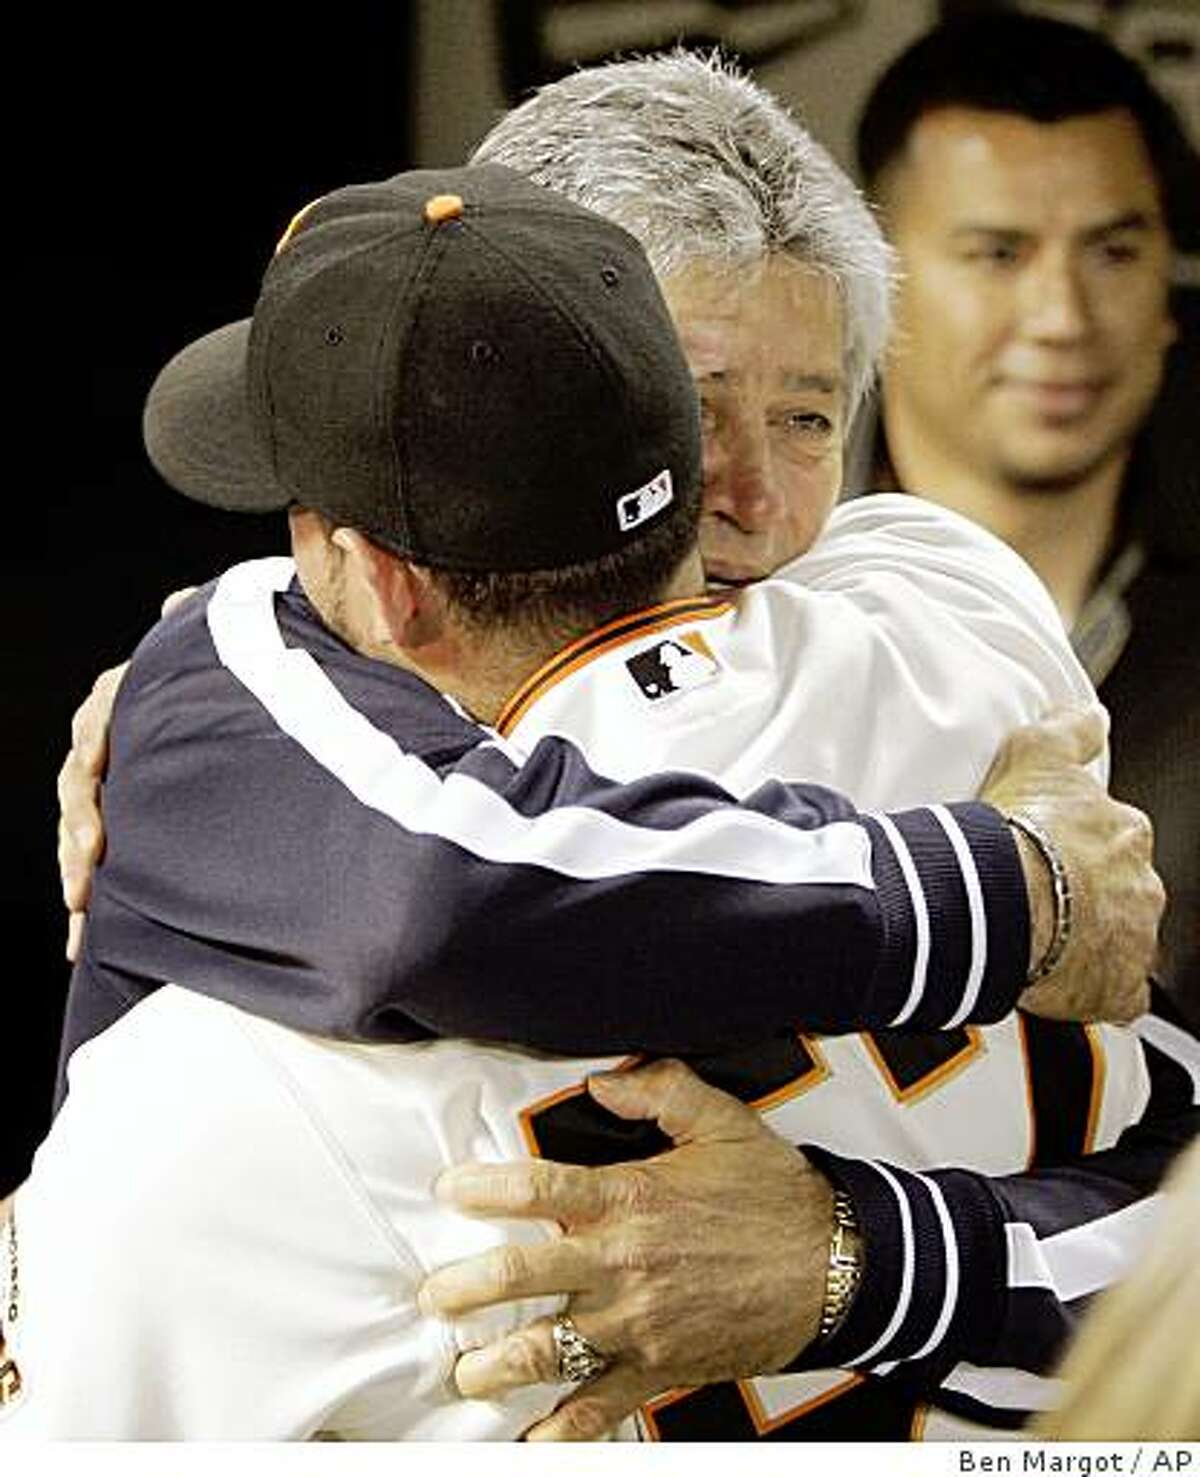 San Francisco Giants' Jonathan Sanchez, left, is embraced by his father, Sigfredo Sanchez, at the end of a baseball game after pitching a no-hitter against the San Diego Padres Friday, July 10, 2009, in San Francisco. Sanchez said his father arrived in San Francisco the previous night.